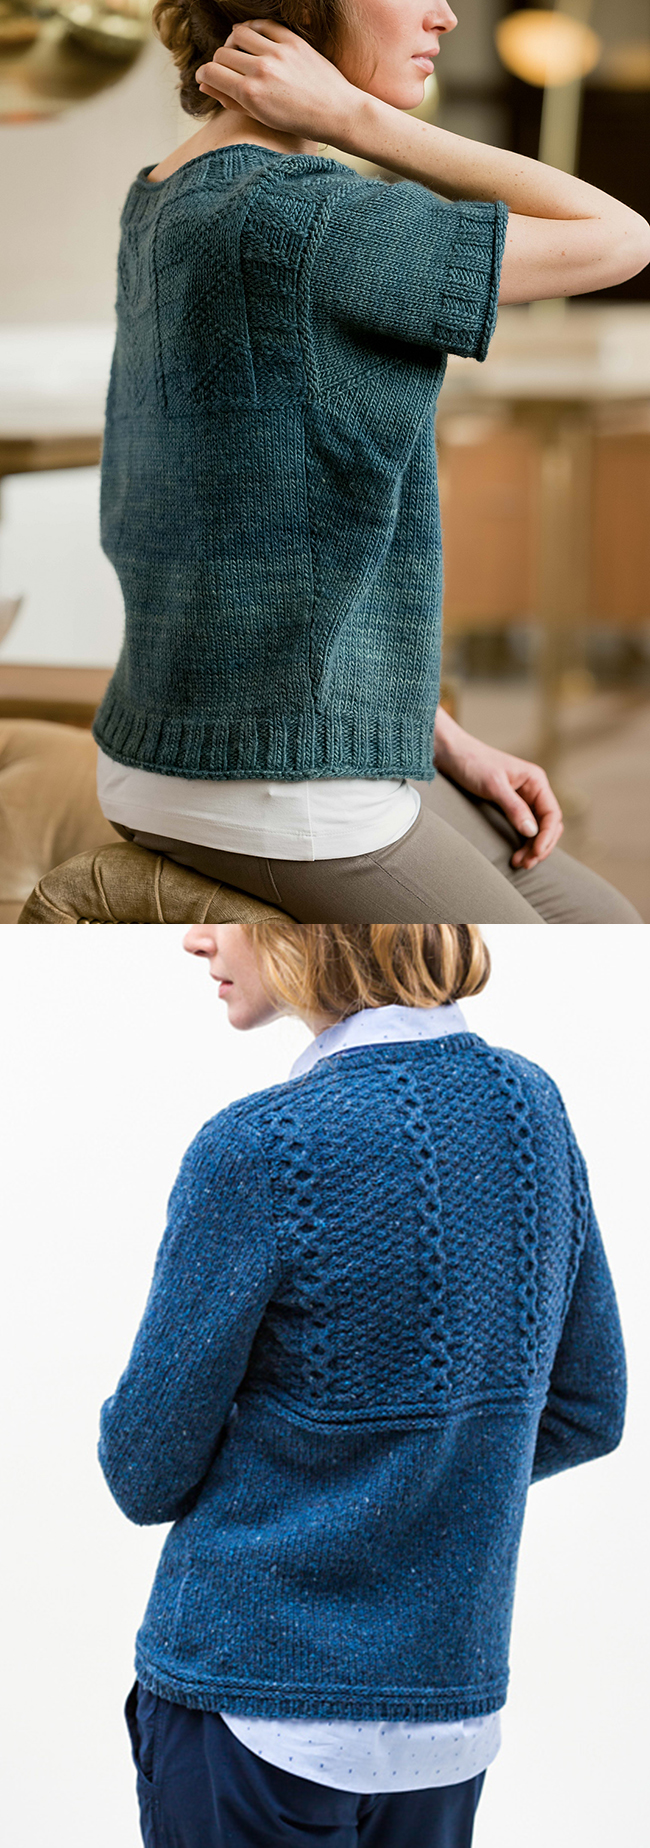 New Favorites: Modified gansey sweaters